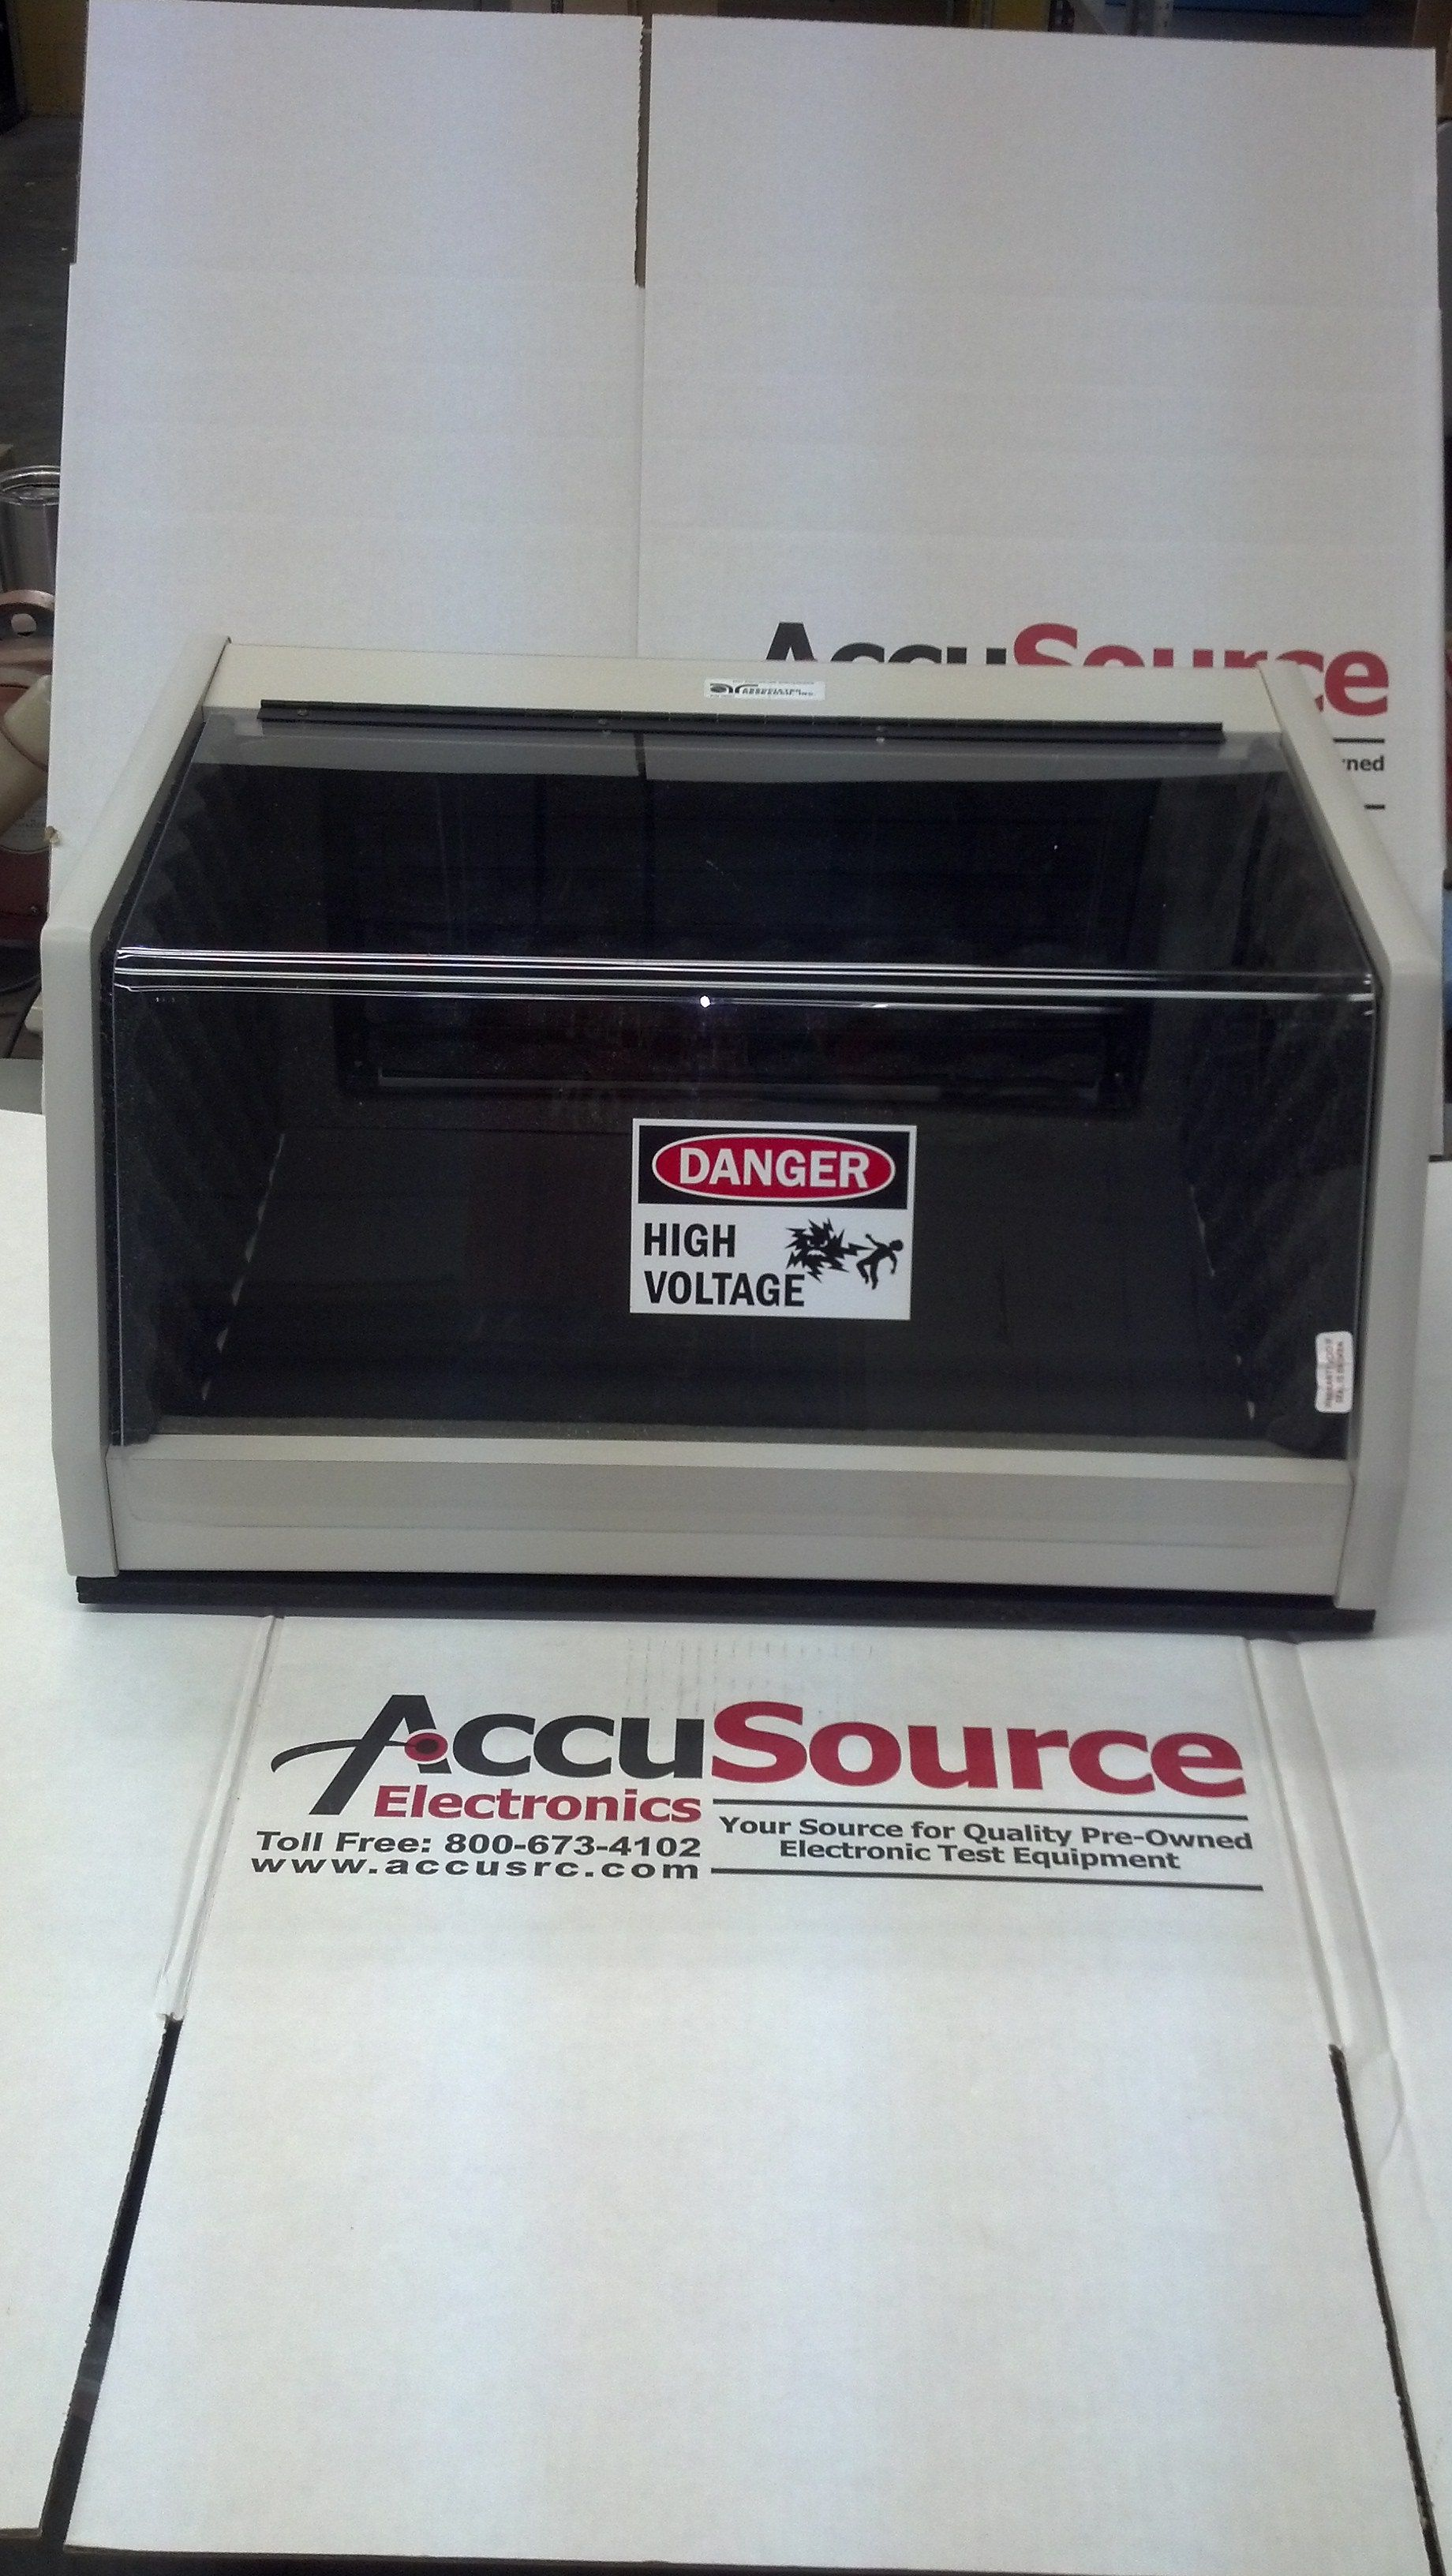 Associated Research 39067 Dut Enclosure 24 W X 19 D X 11 5 H With Safety Interlock Refurbished Electronics Electronics Research